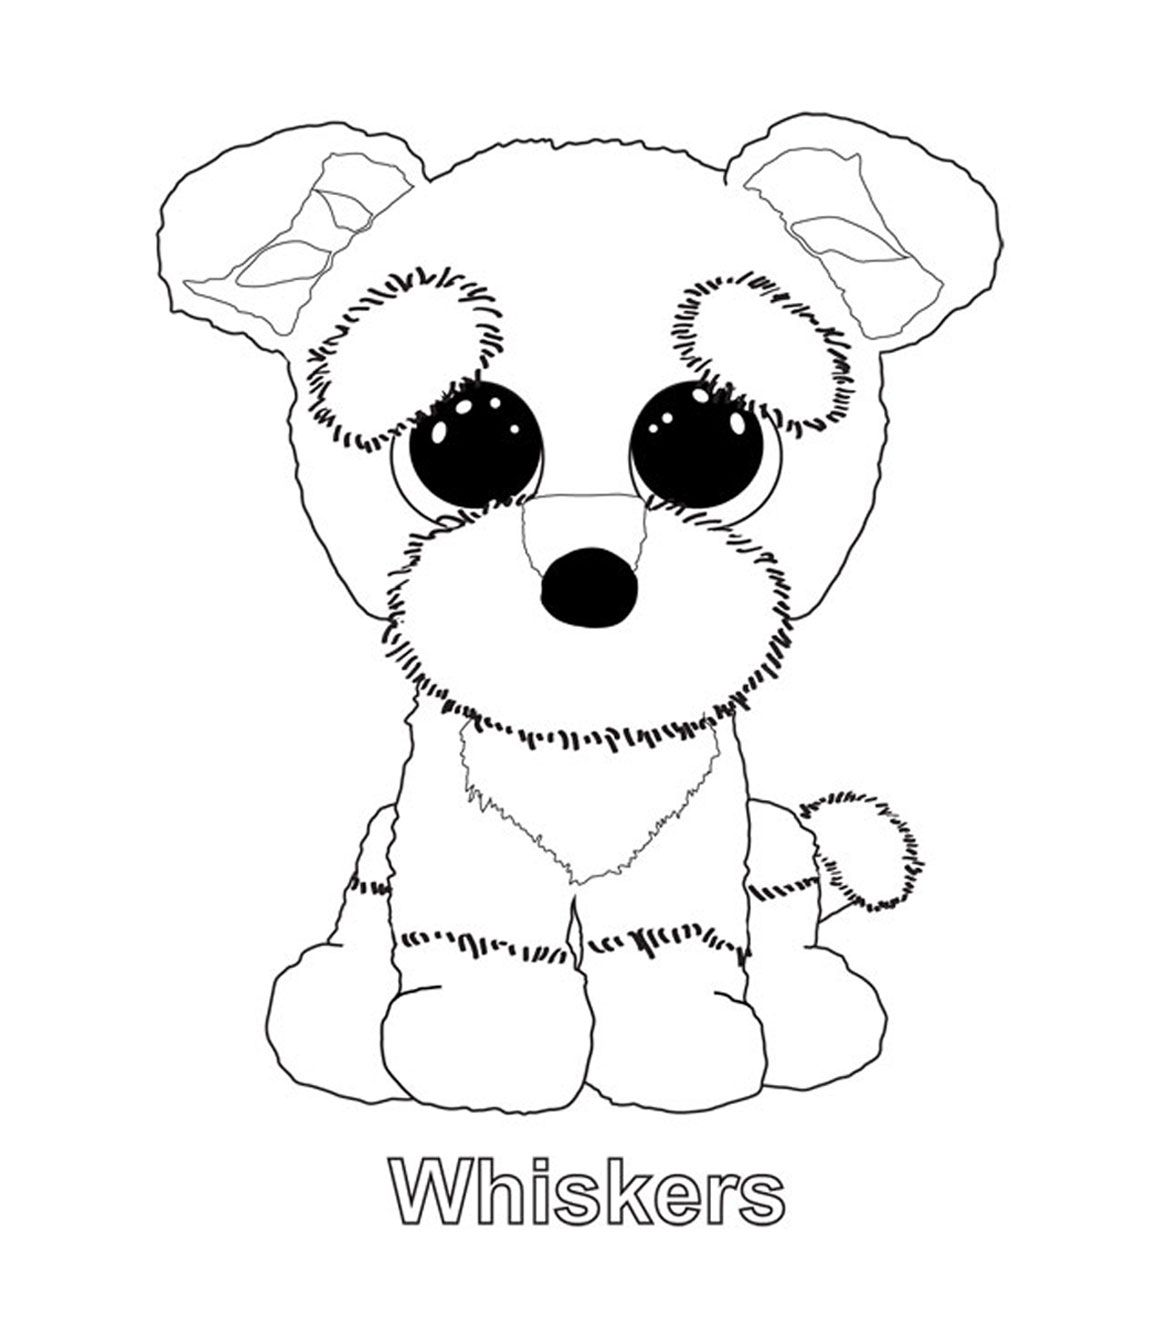 Whiskers Puppy Coloring Pages Beanie Boo Birthdays Coloring Pages